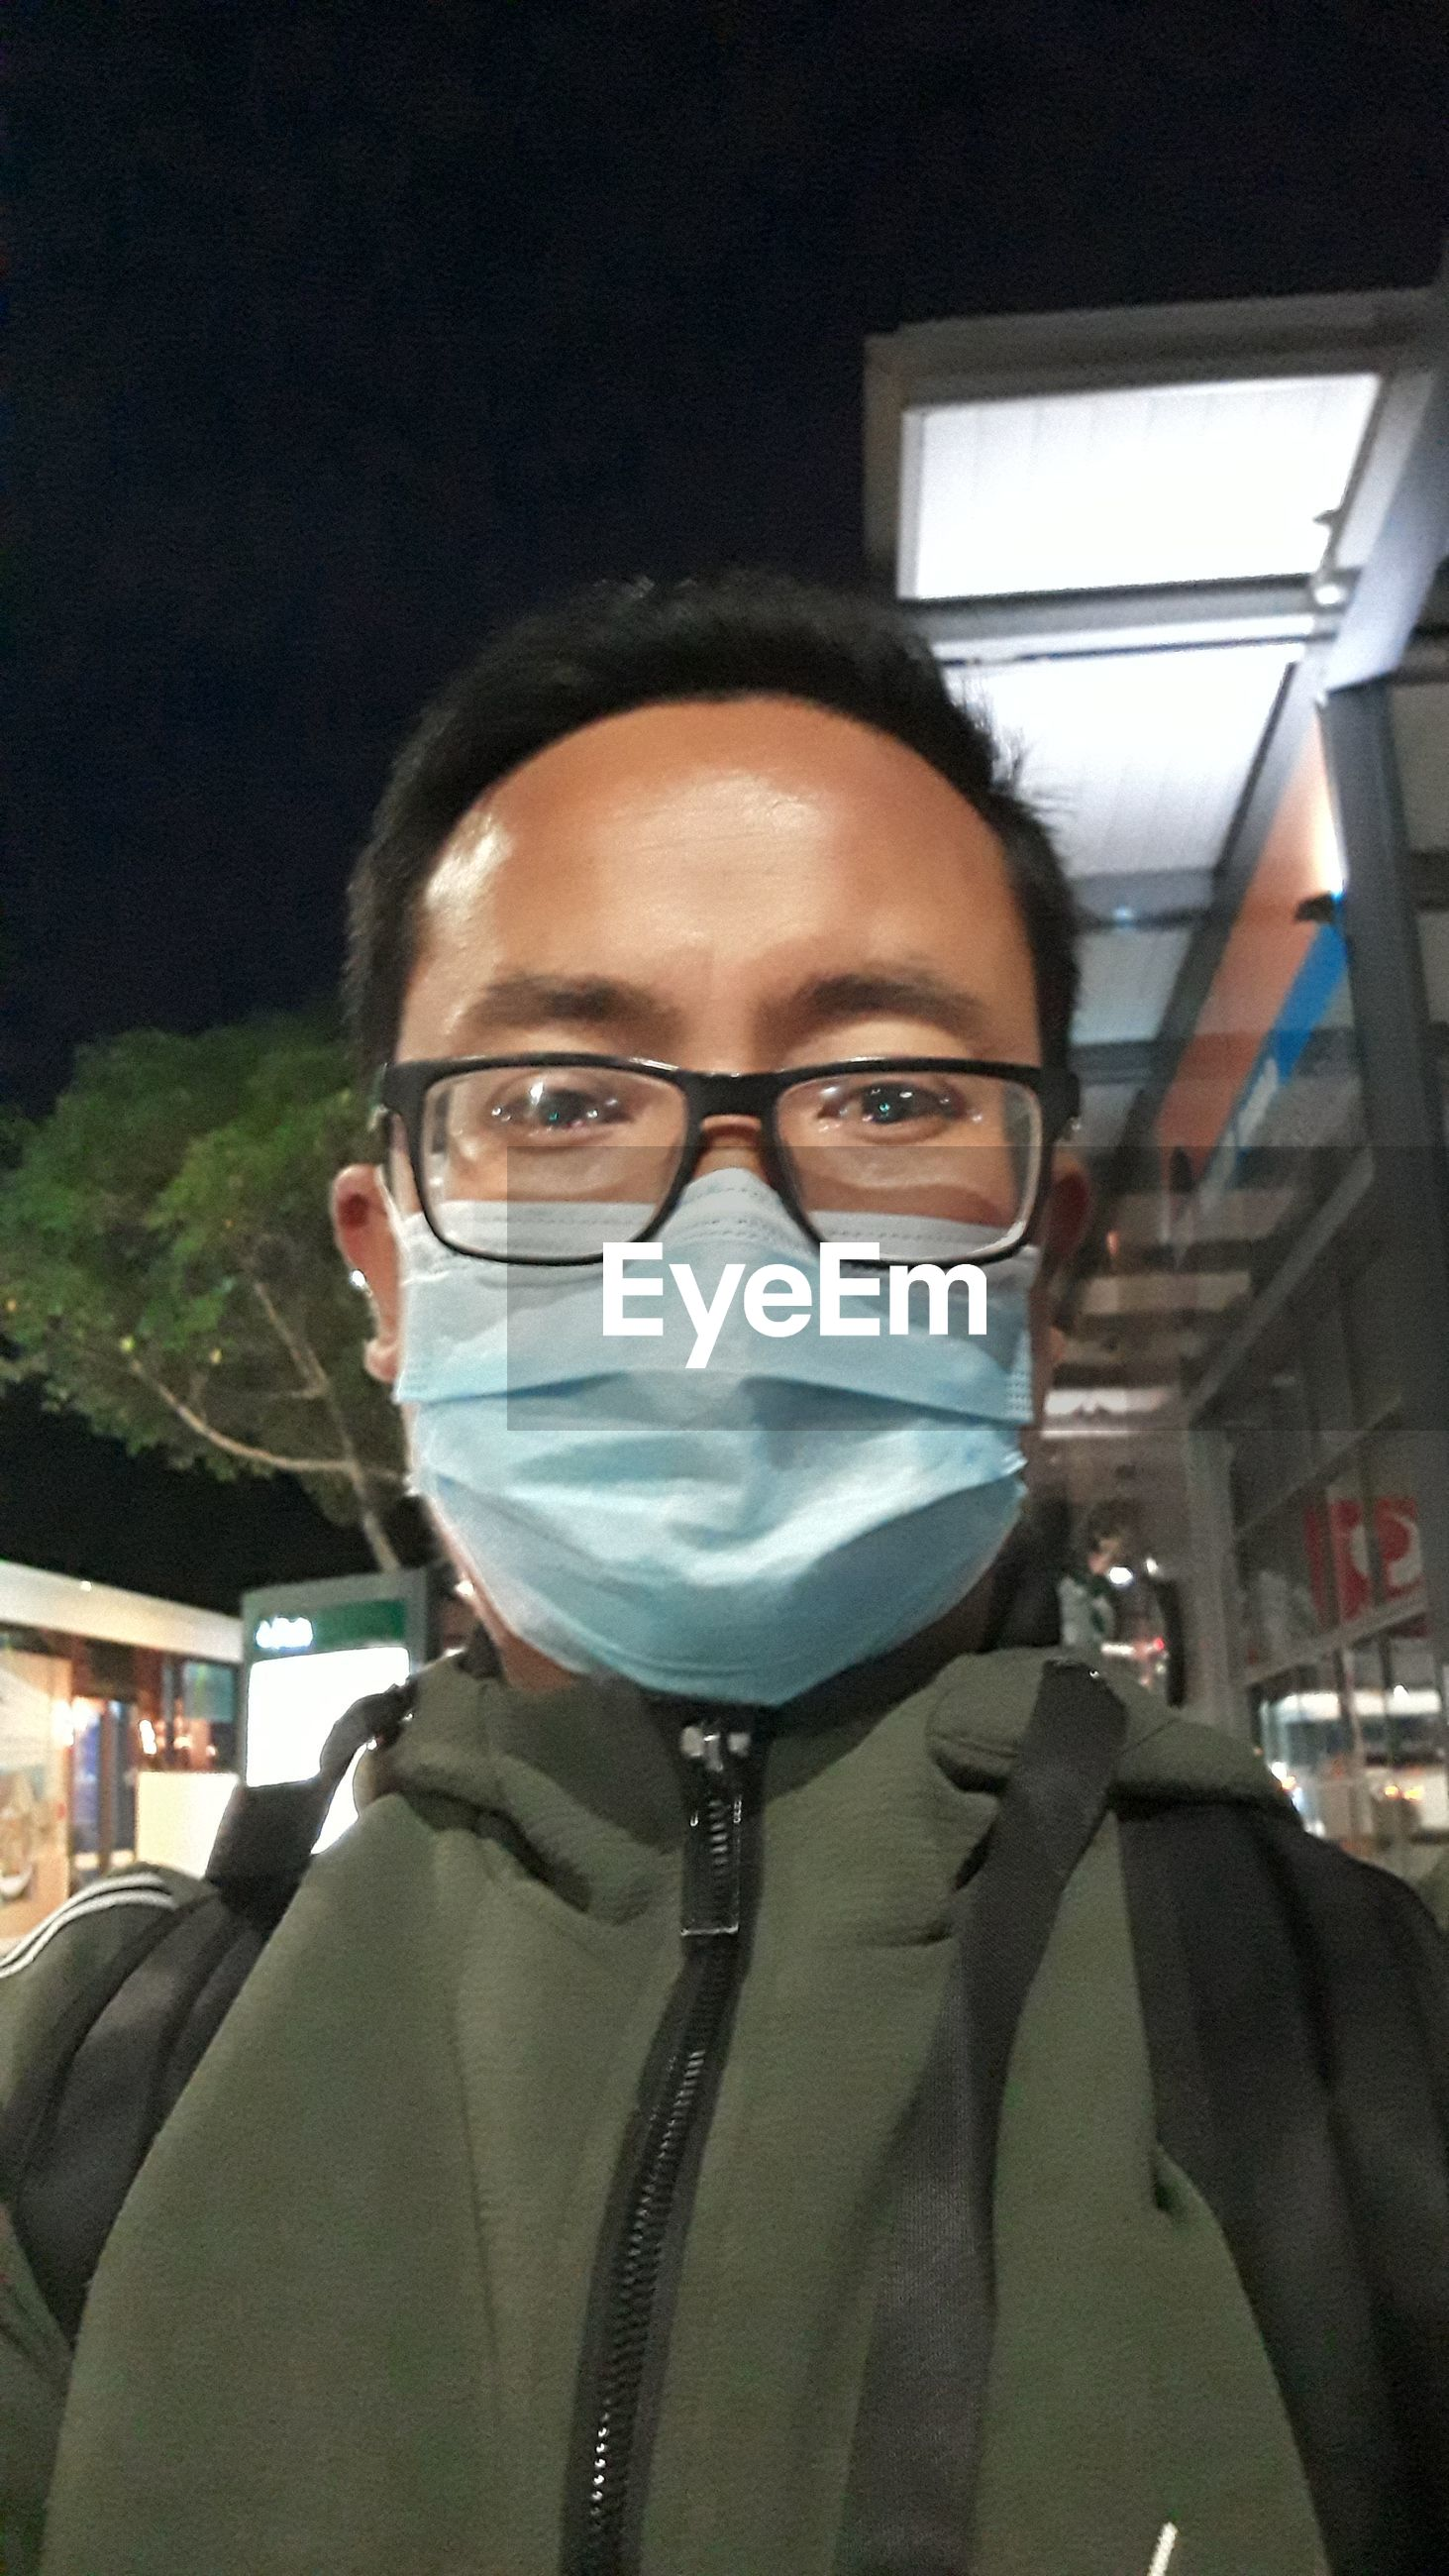 Portrait of man with eyeglasses wearing mask in city